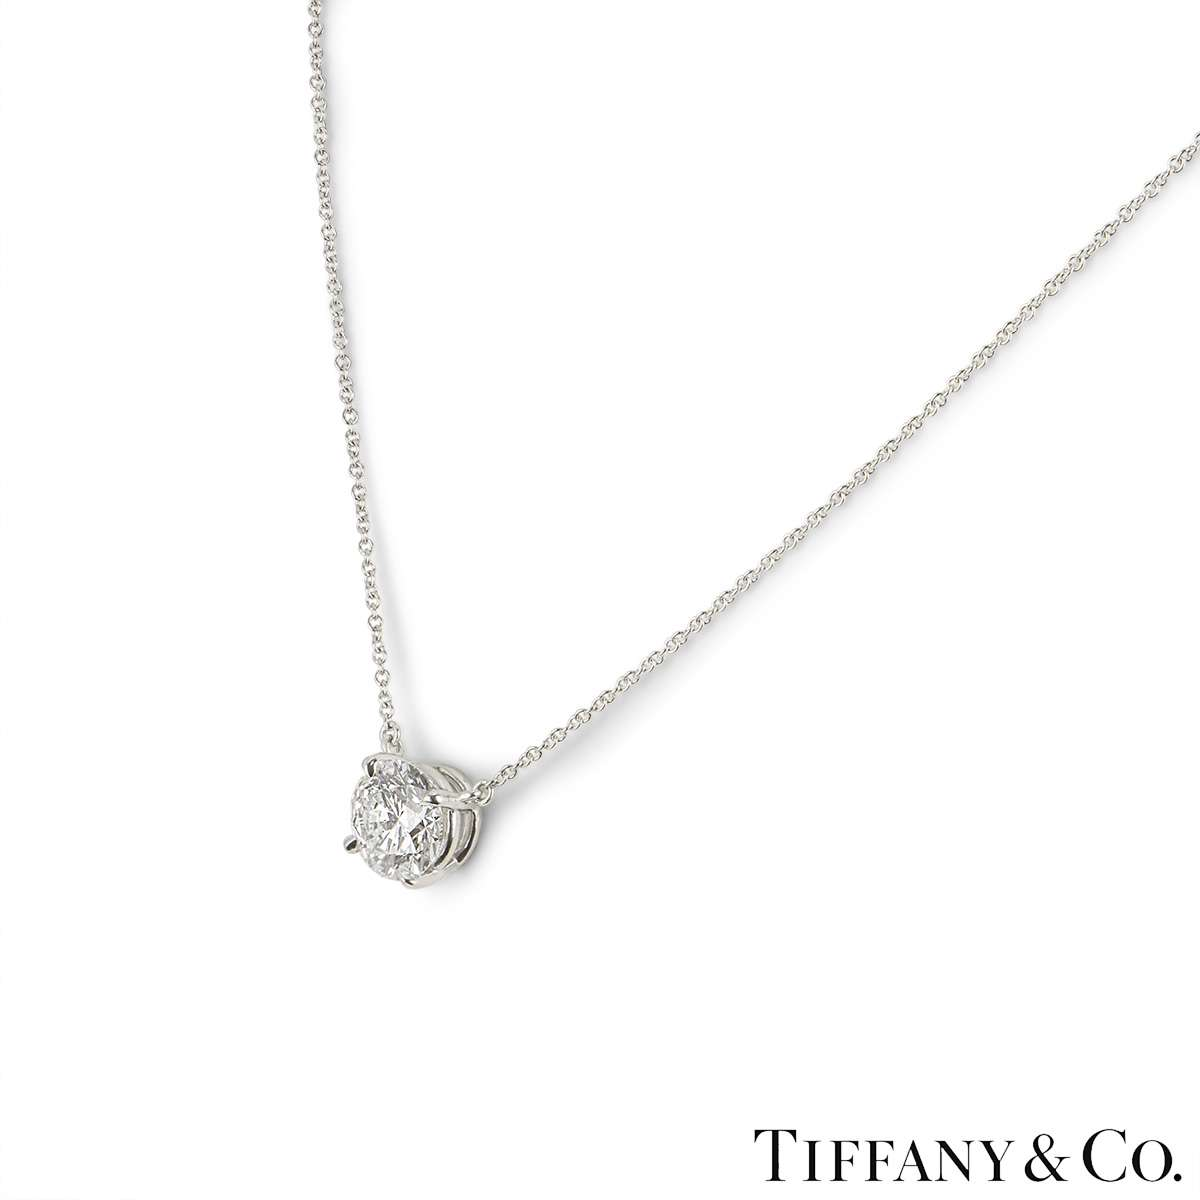 Tiffany & Co. Platinum Diamond Solitaire Pendant 2.01ct F/VS1